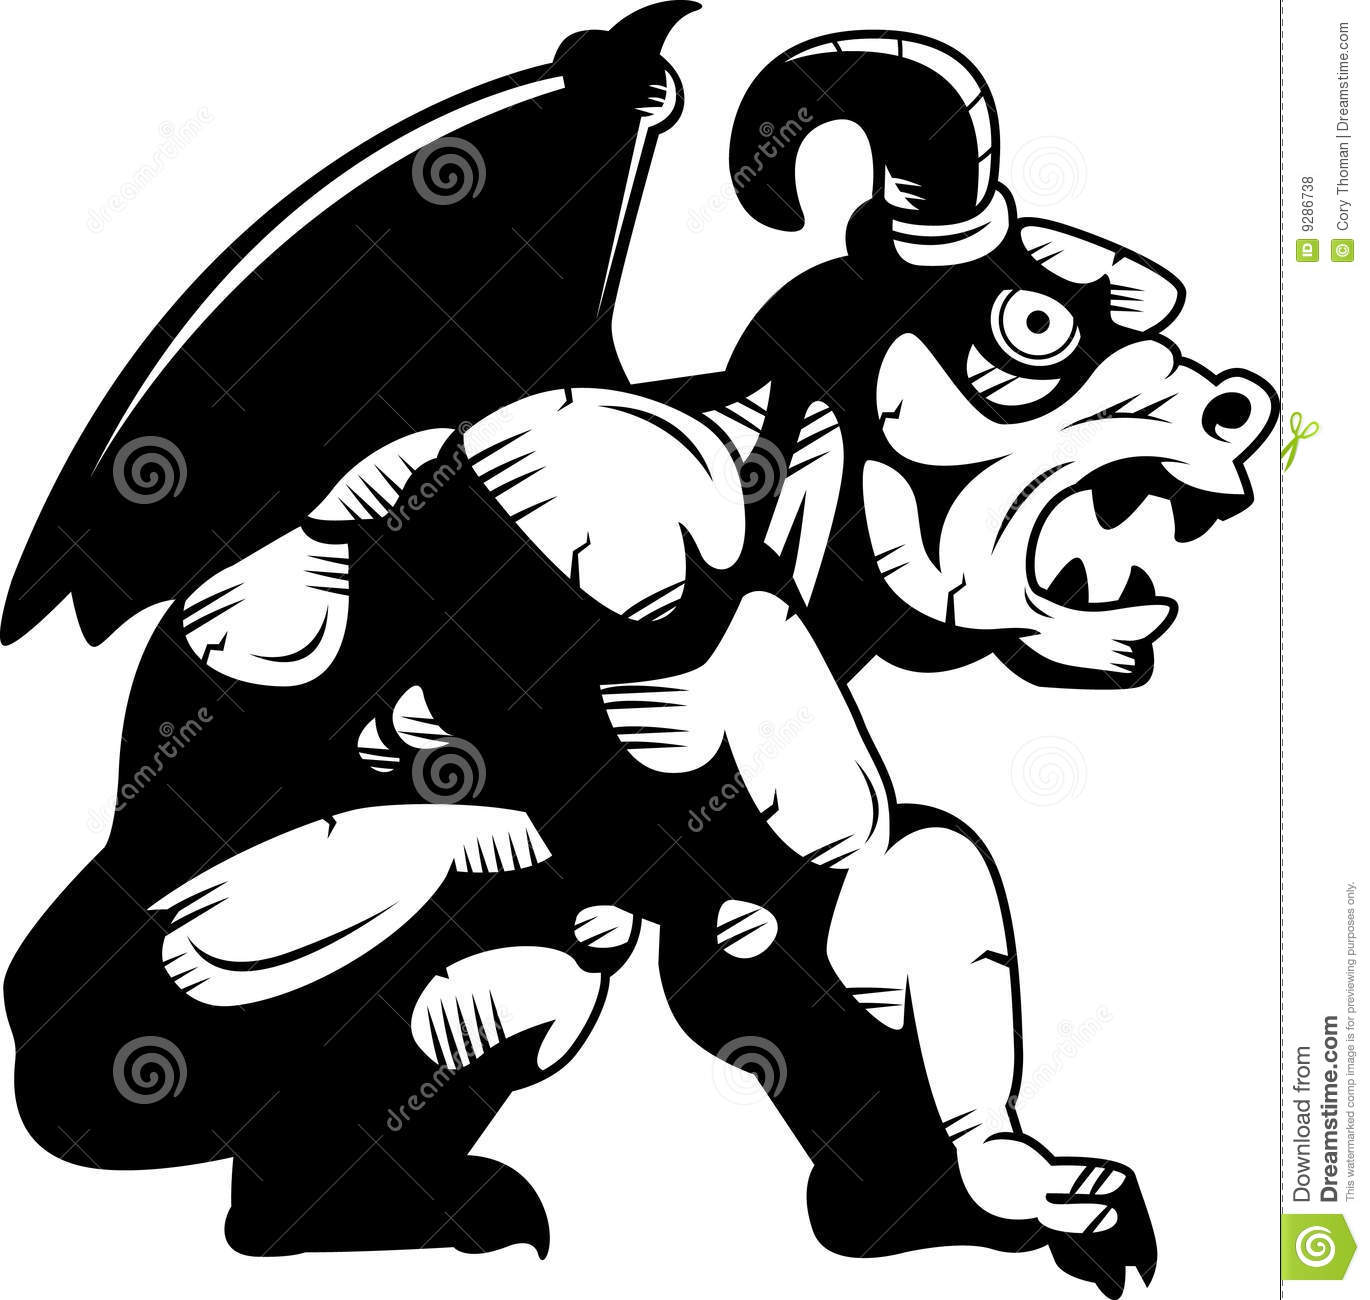 hight resolution of a gargoyle monster with wings perched